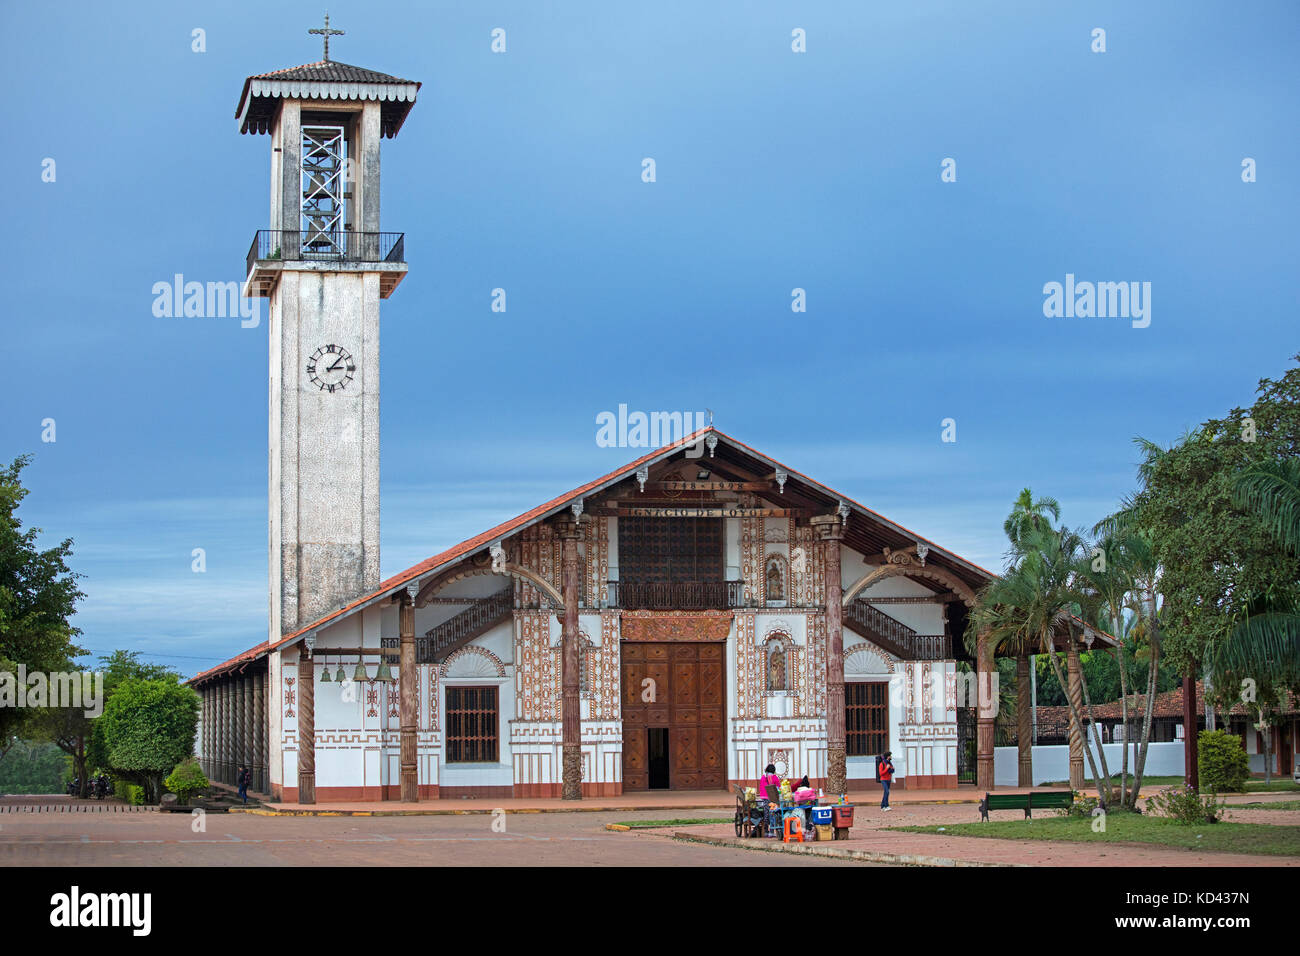 Jesuit mission church at San Ignacio de Velasco, José Miguel de Velasco Province, Santa Cruz Department, Bolivia - Stock Image